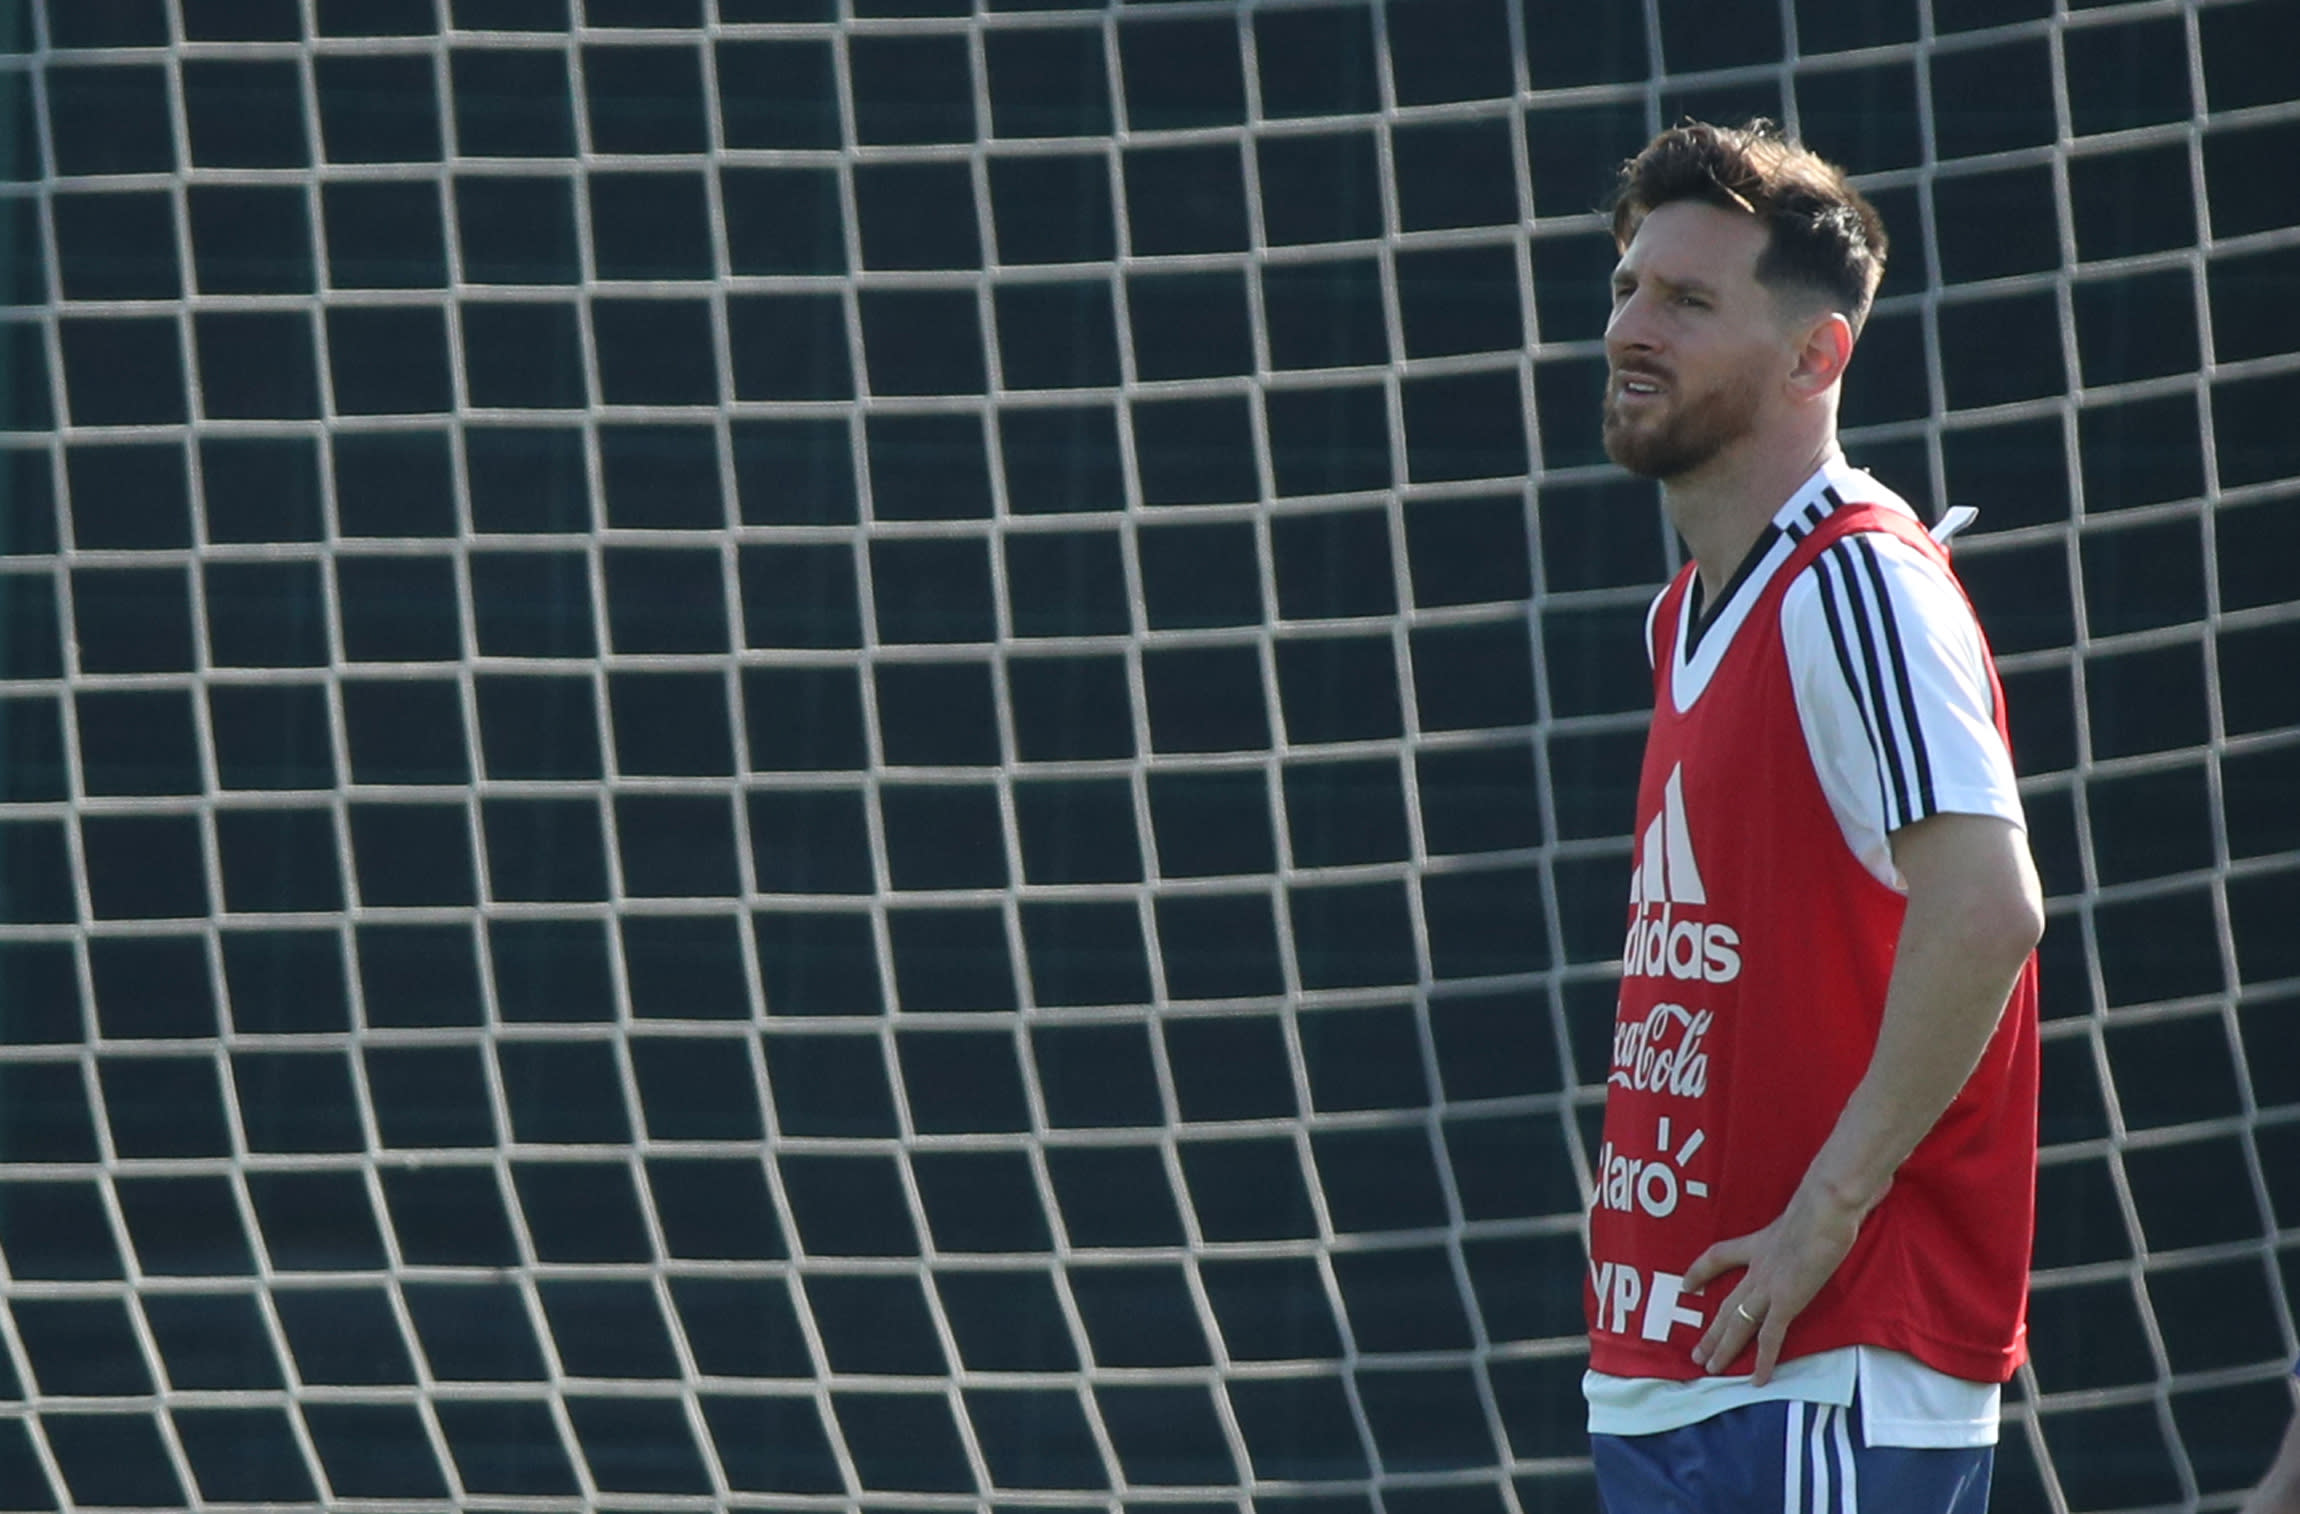 Argentina's Lionel Messi in training (Reuters)